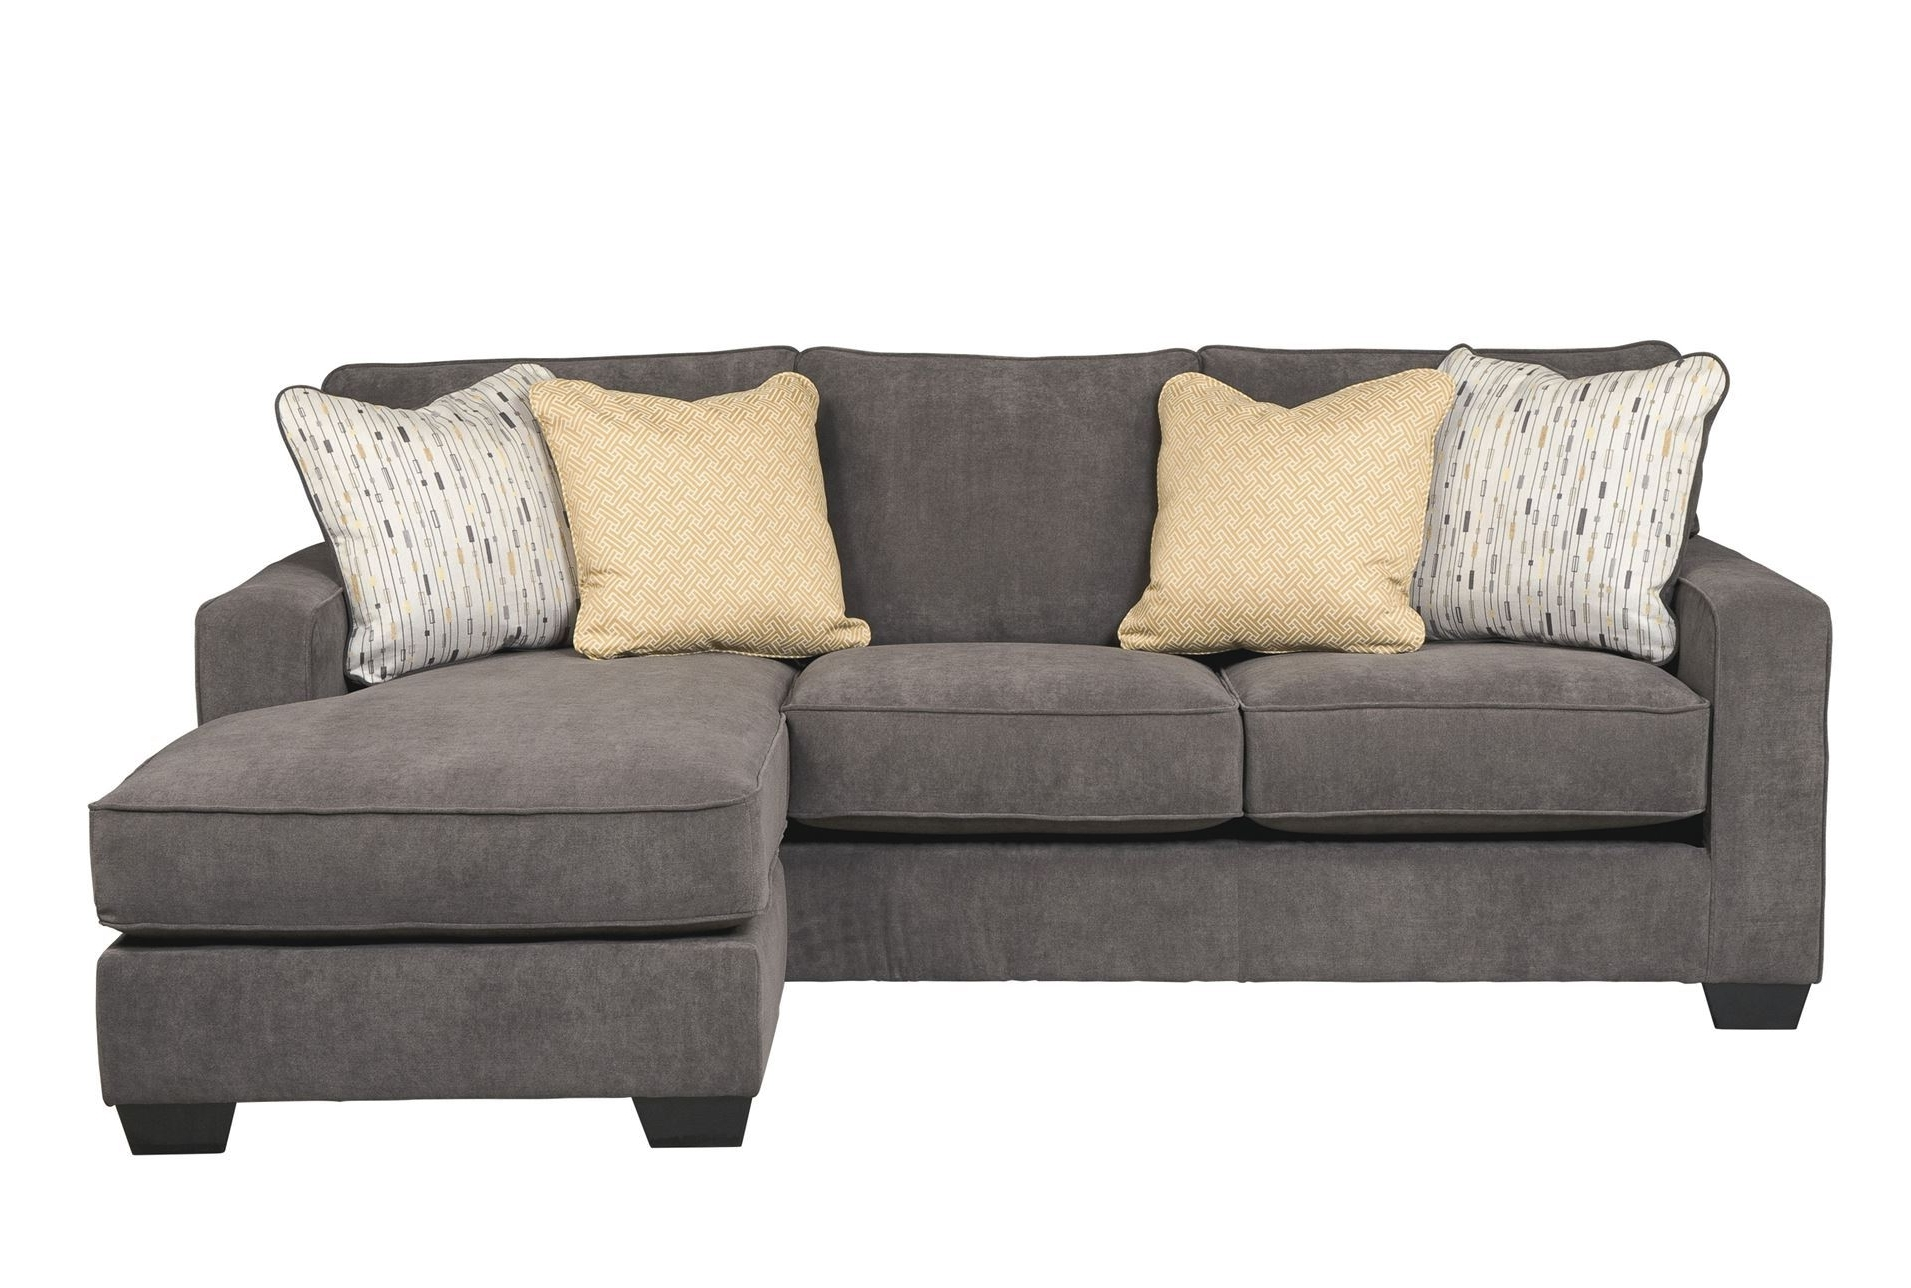 Living Spaces, Living Rooms And Apartments With Regard To Gray Sectionals With Chaise (View 7 of 15)